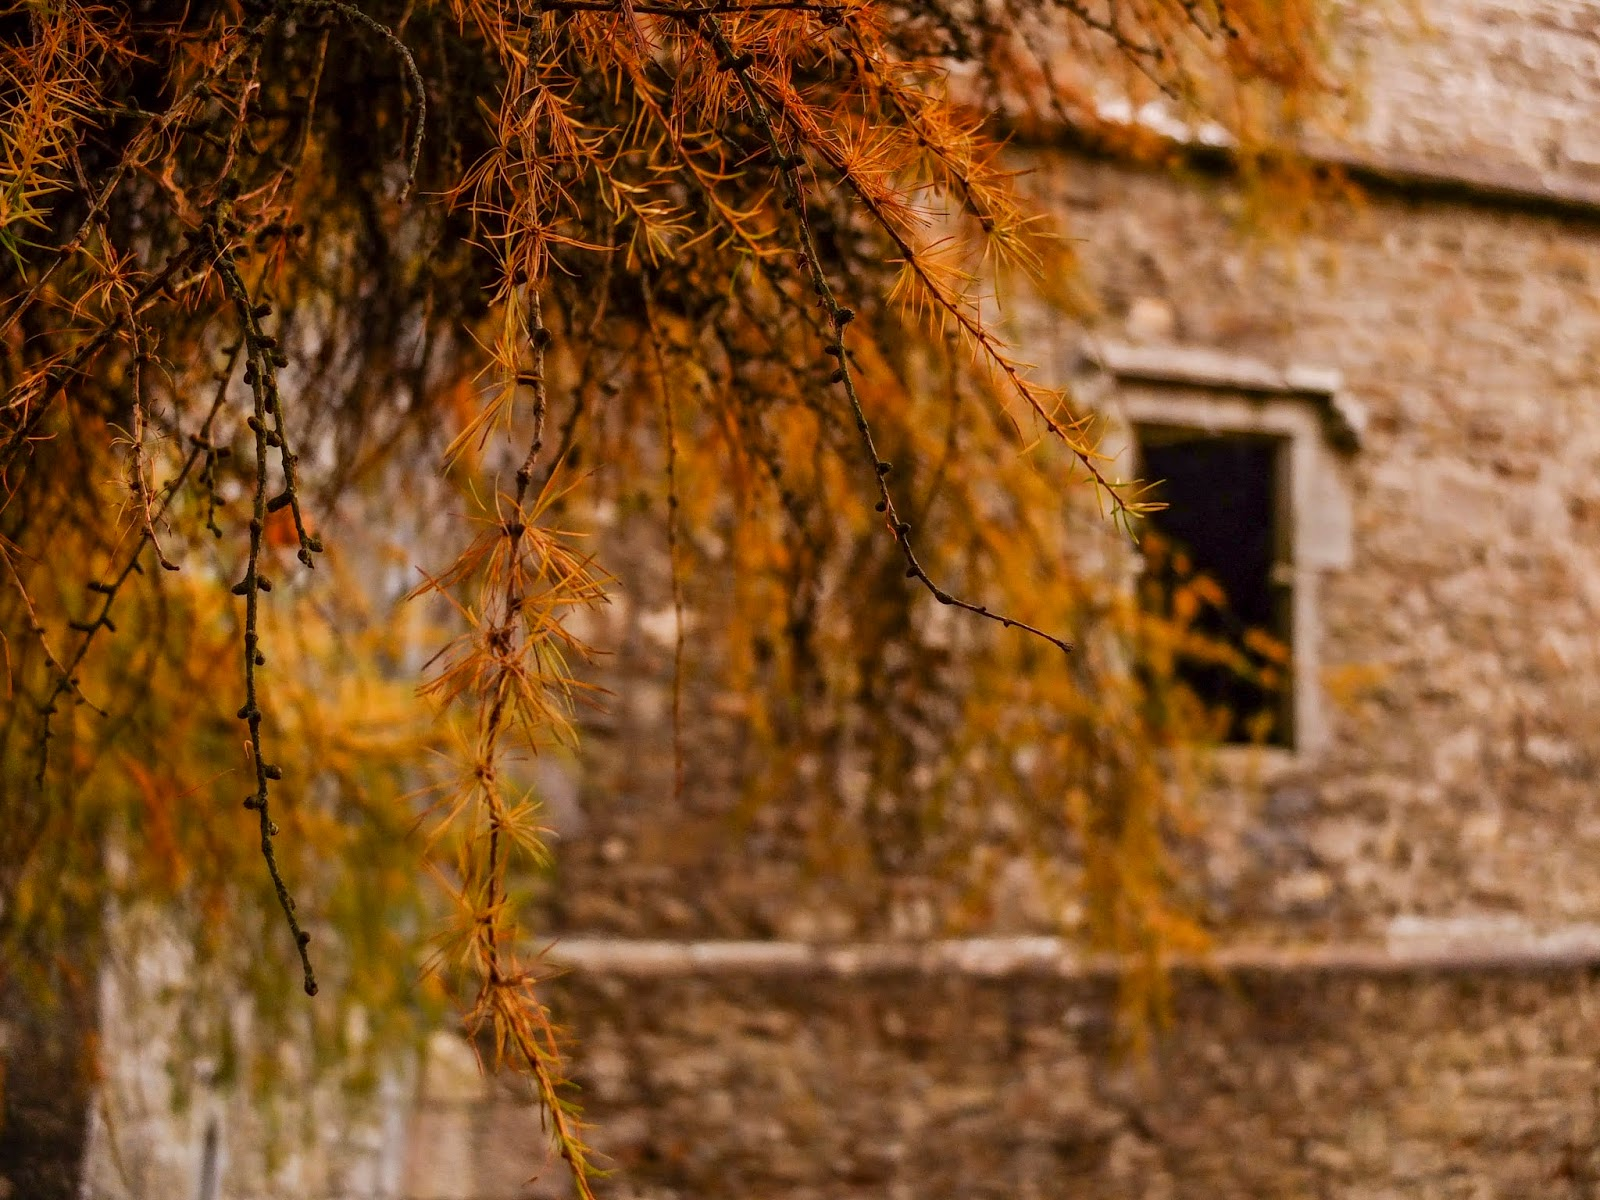 Yellowing conifer needles on branches outside Kanturk Castle in North Cork.